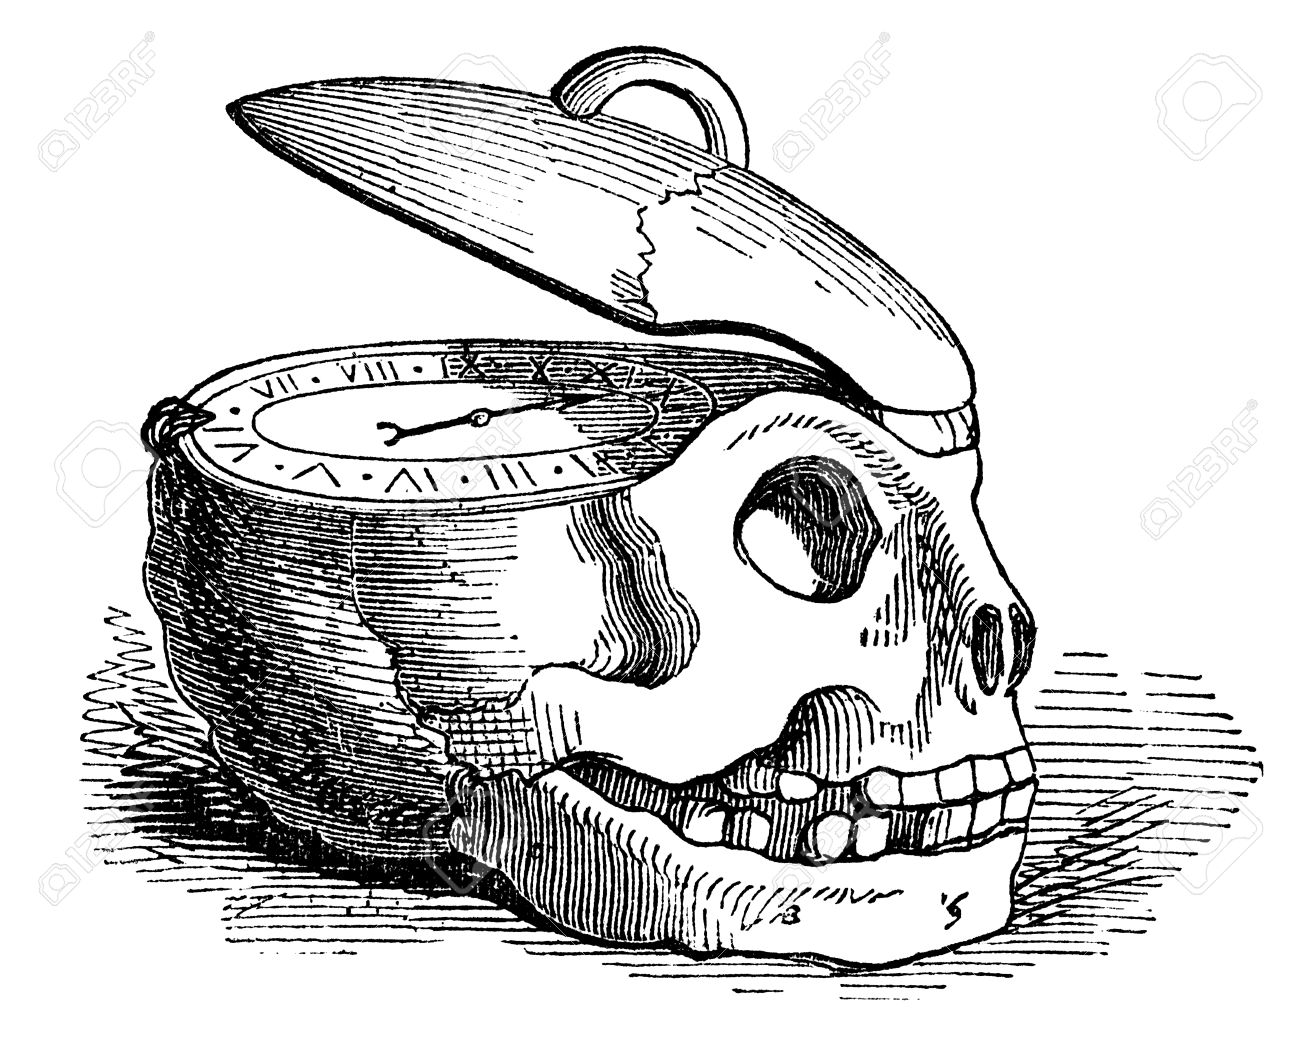 an engraved illustration drawing of a human skull clock watch of the concept of time